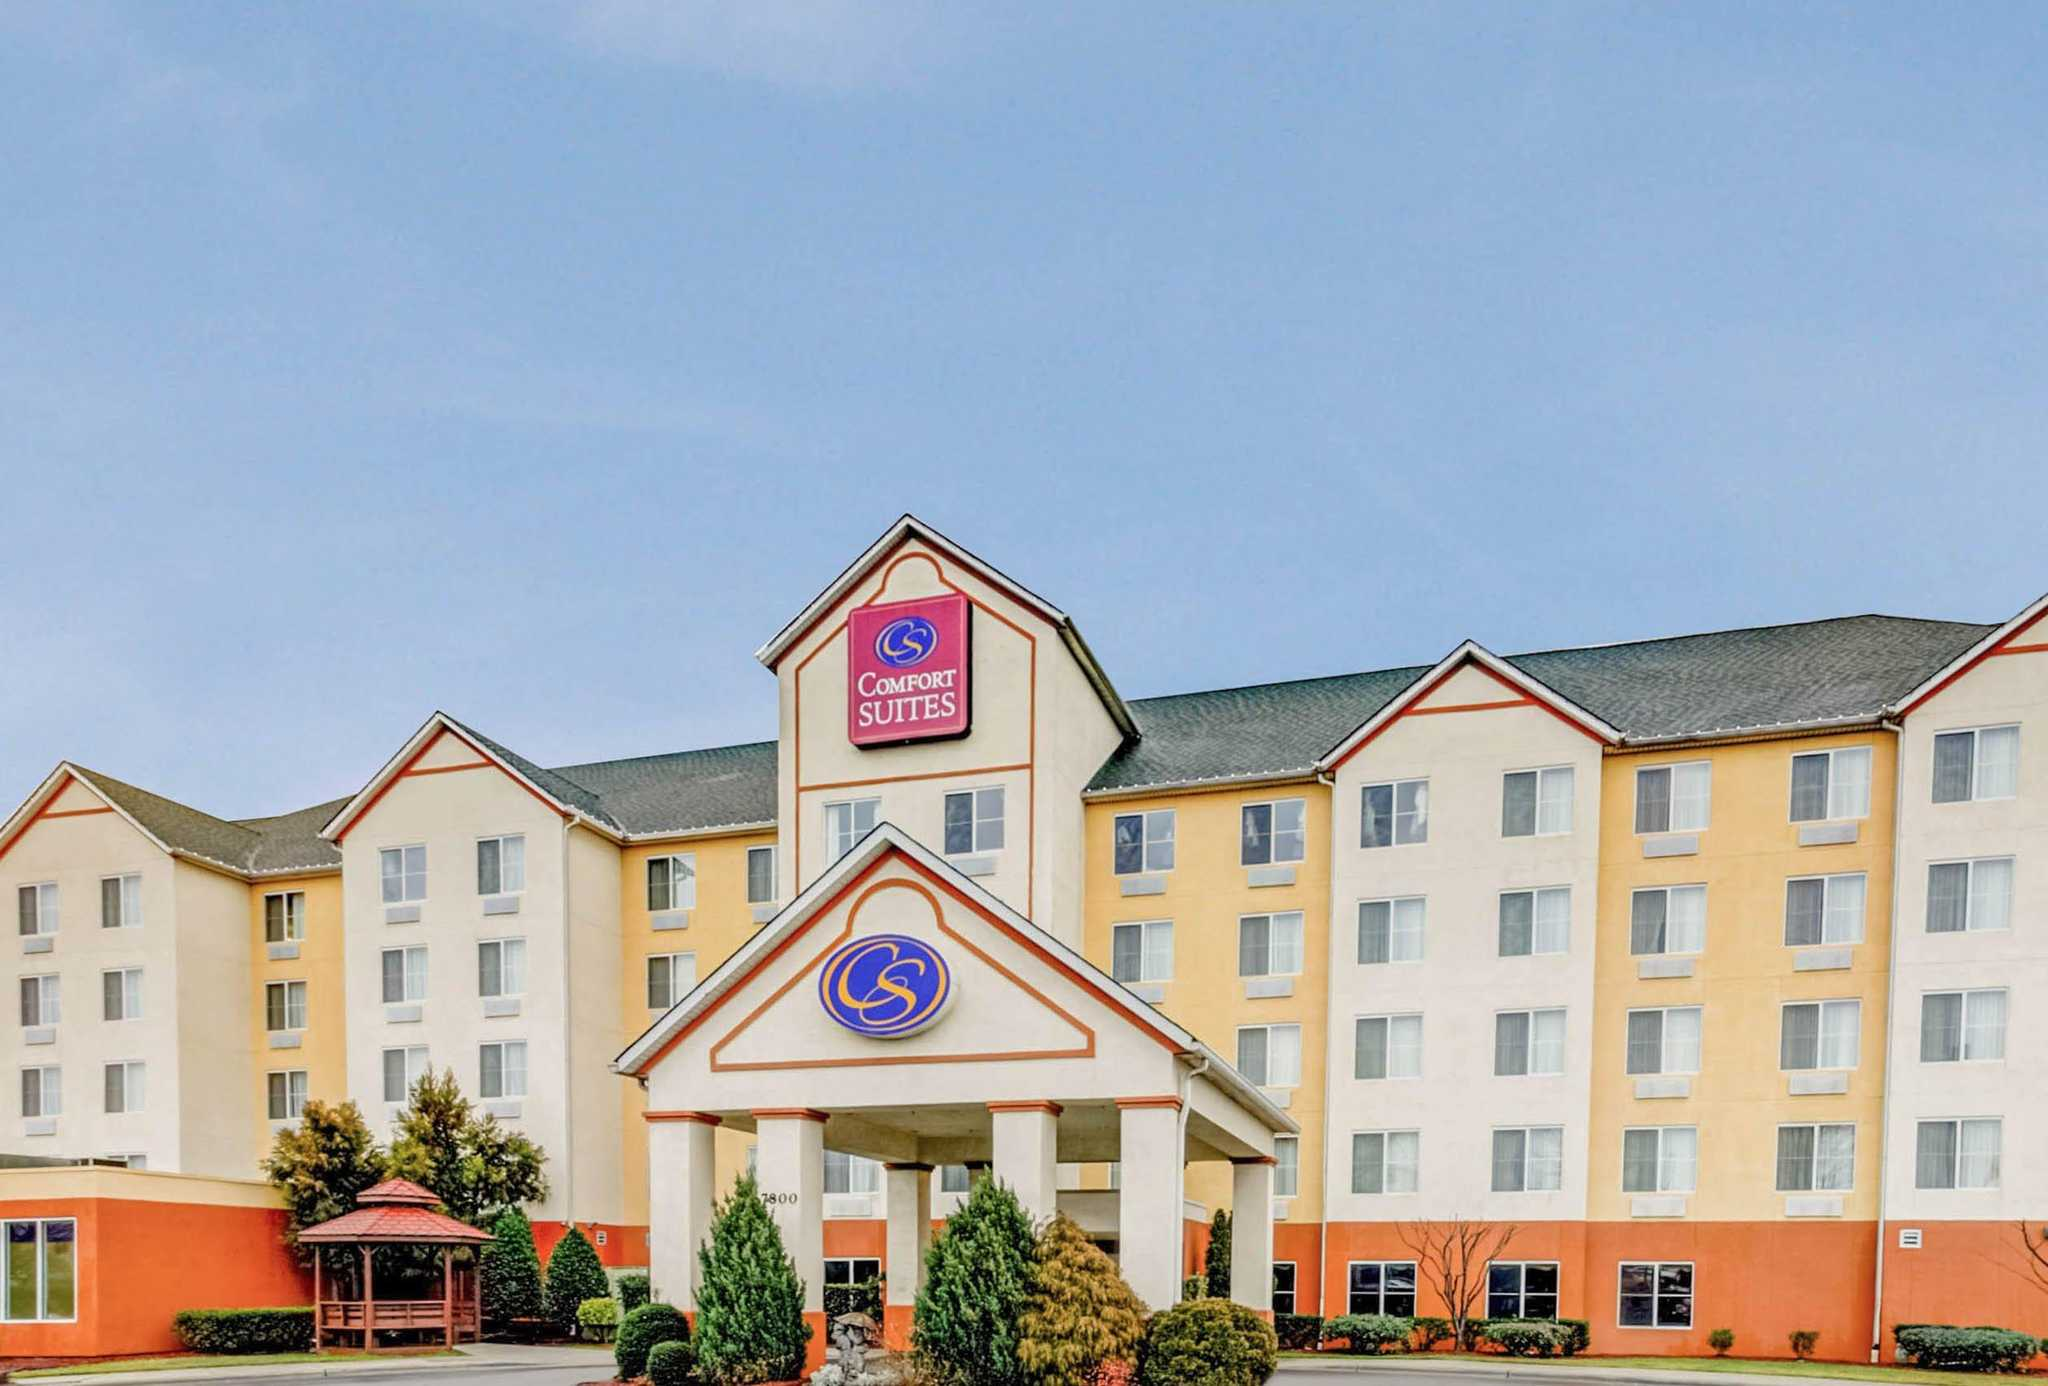 Comfort suites concord mills 7800 gateway lane nw for Hotels in charlotte nc near charlotte motor speedway